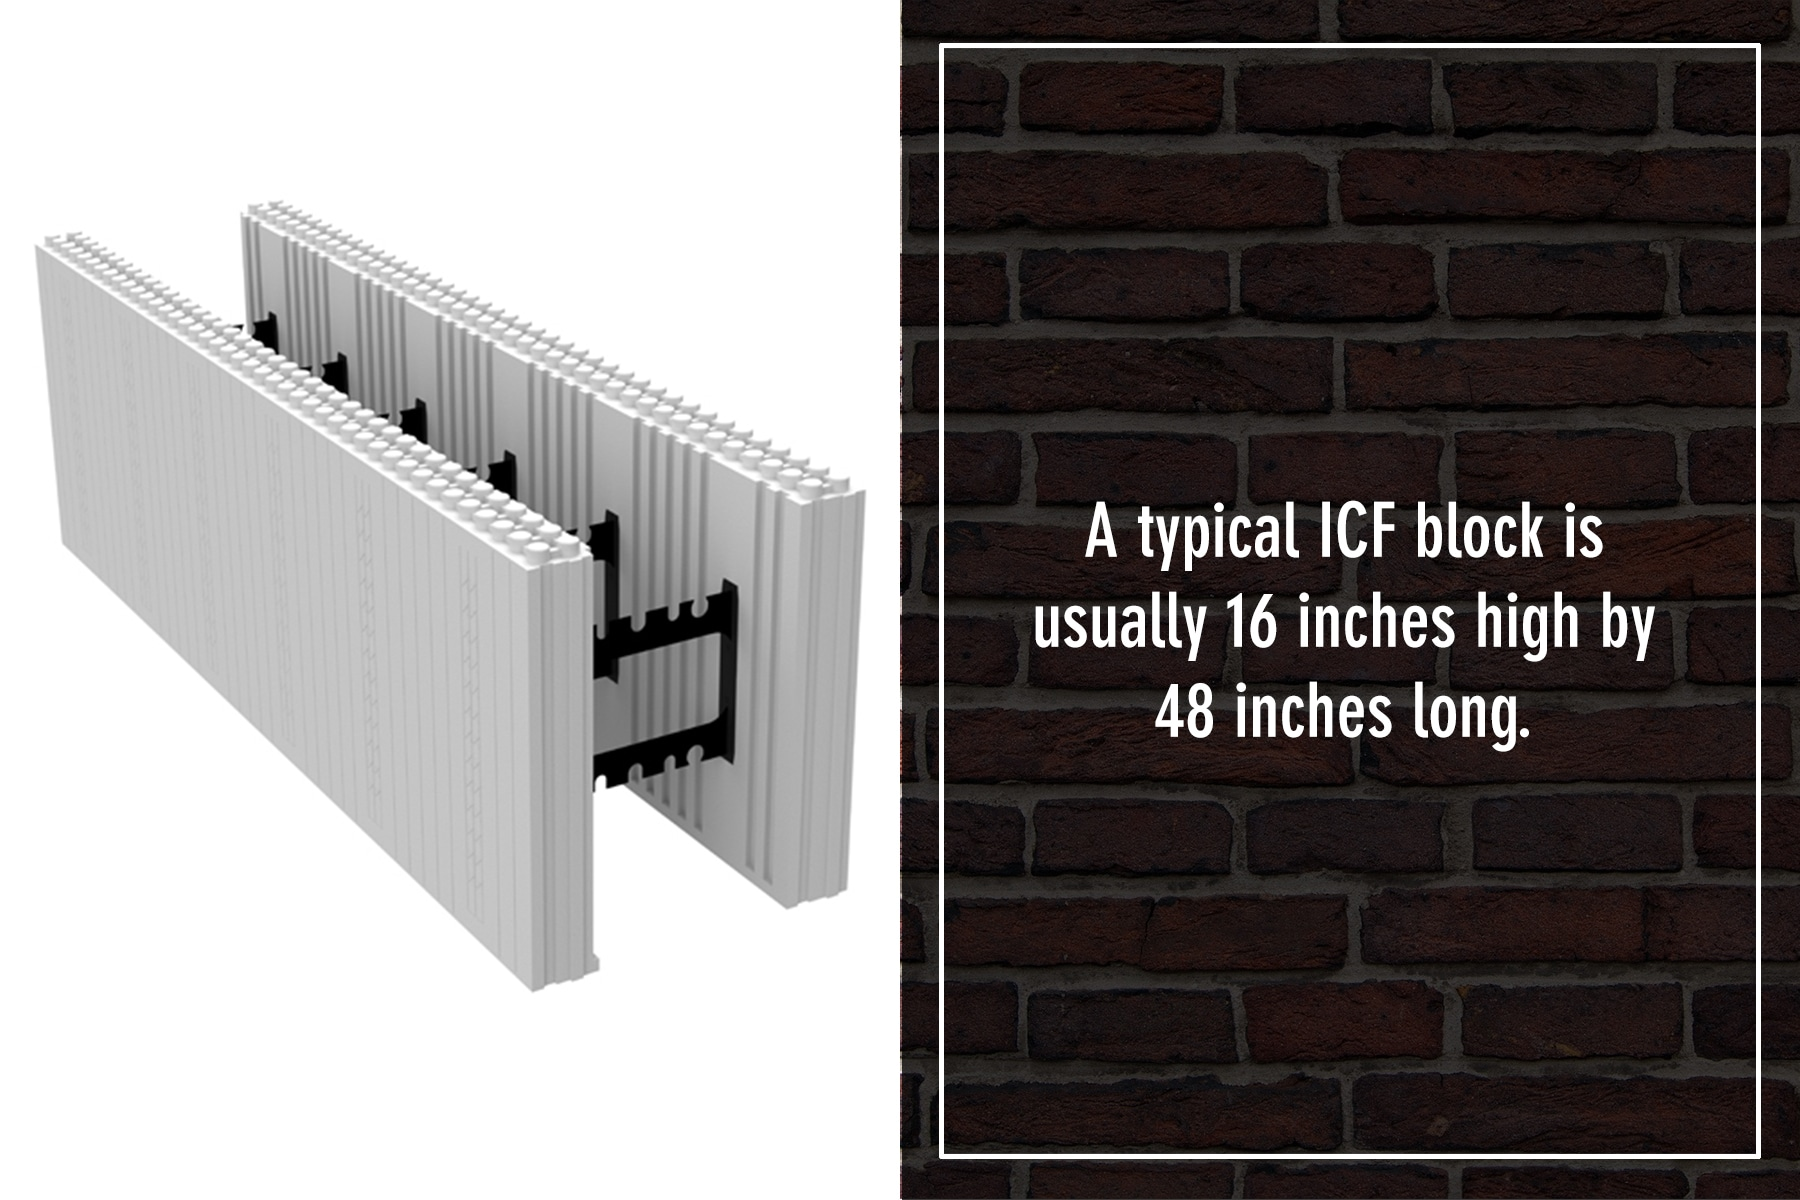 the typical size of an ICF block